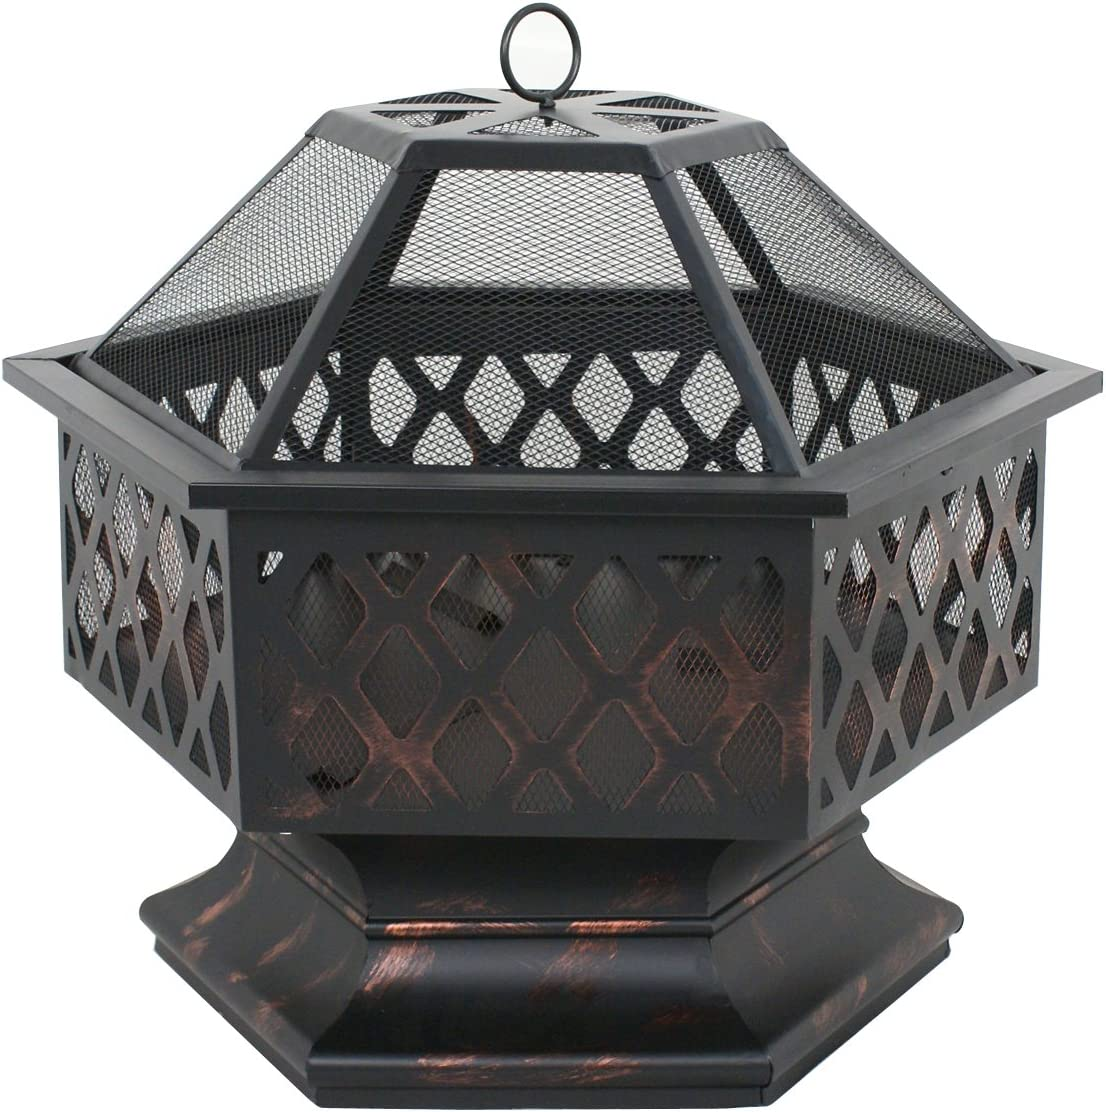 Oteymart 24 Inches Hex Shaped Steel Outdoor Pit Ranking TOP11 Metal Max 54% OFF Firep Fire